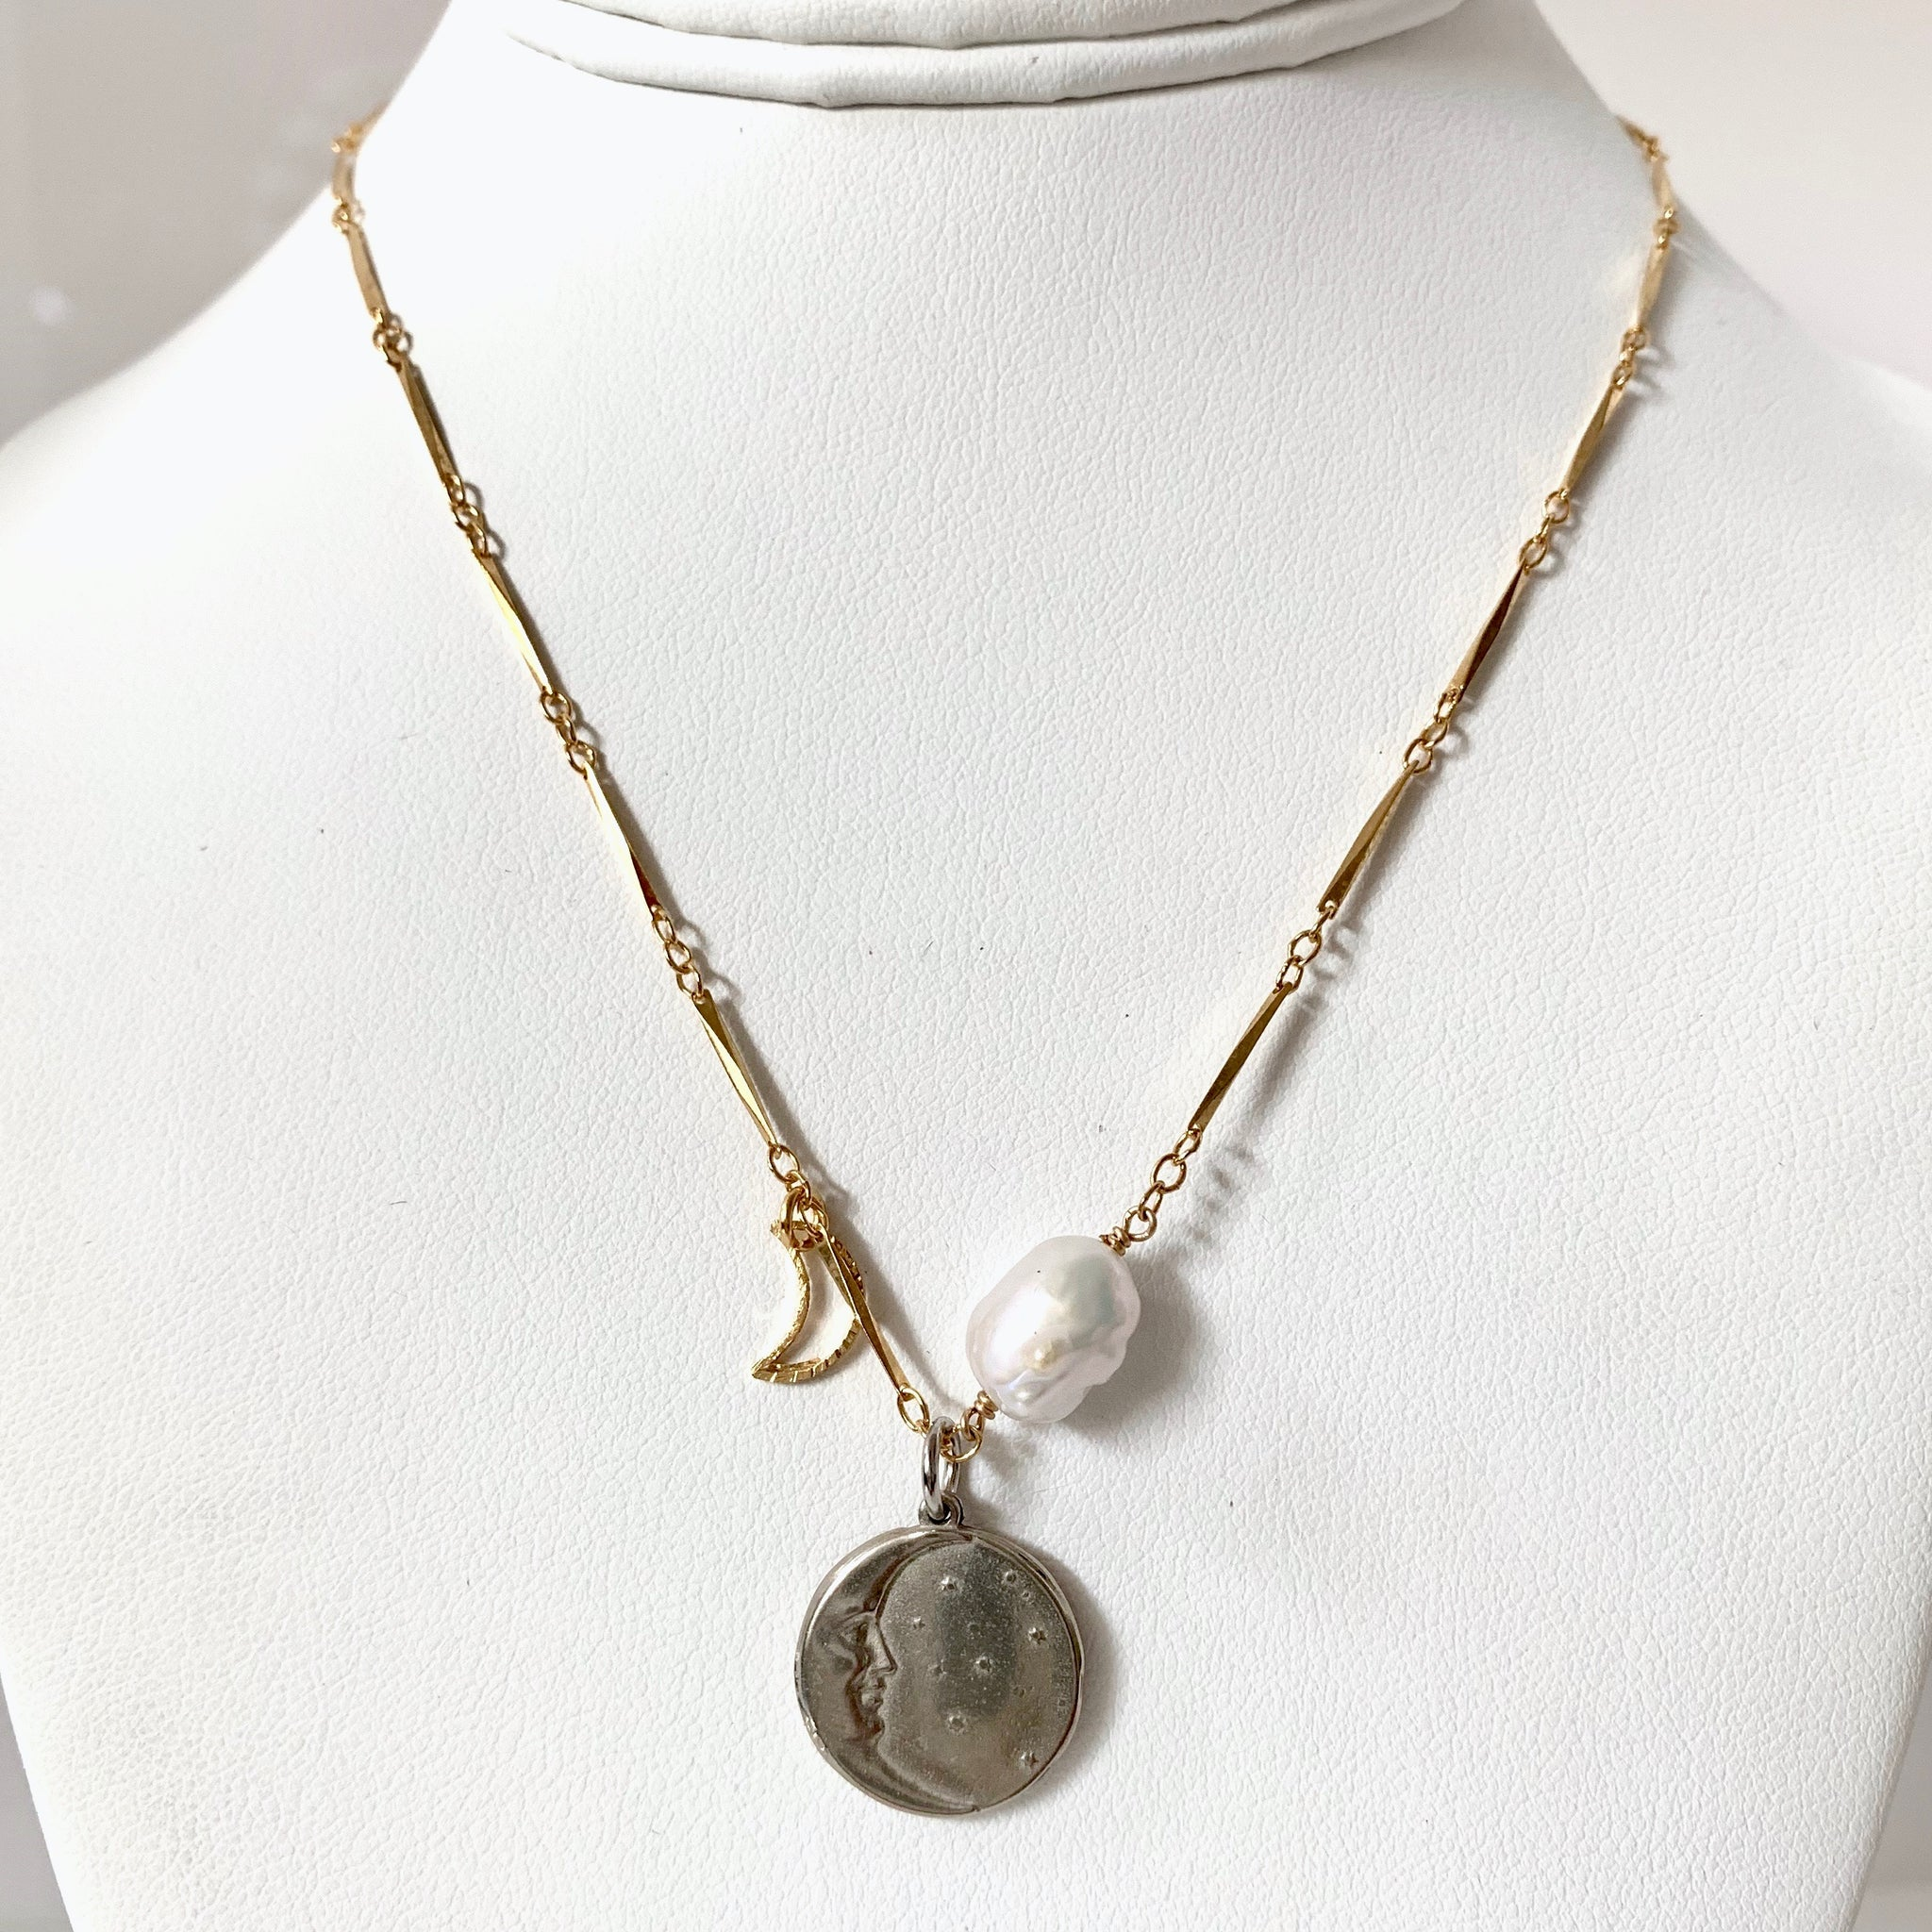 SALE The Luna Necklace